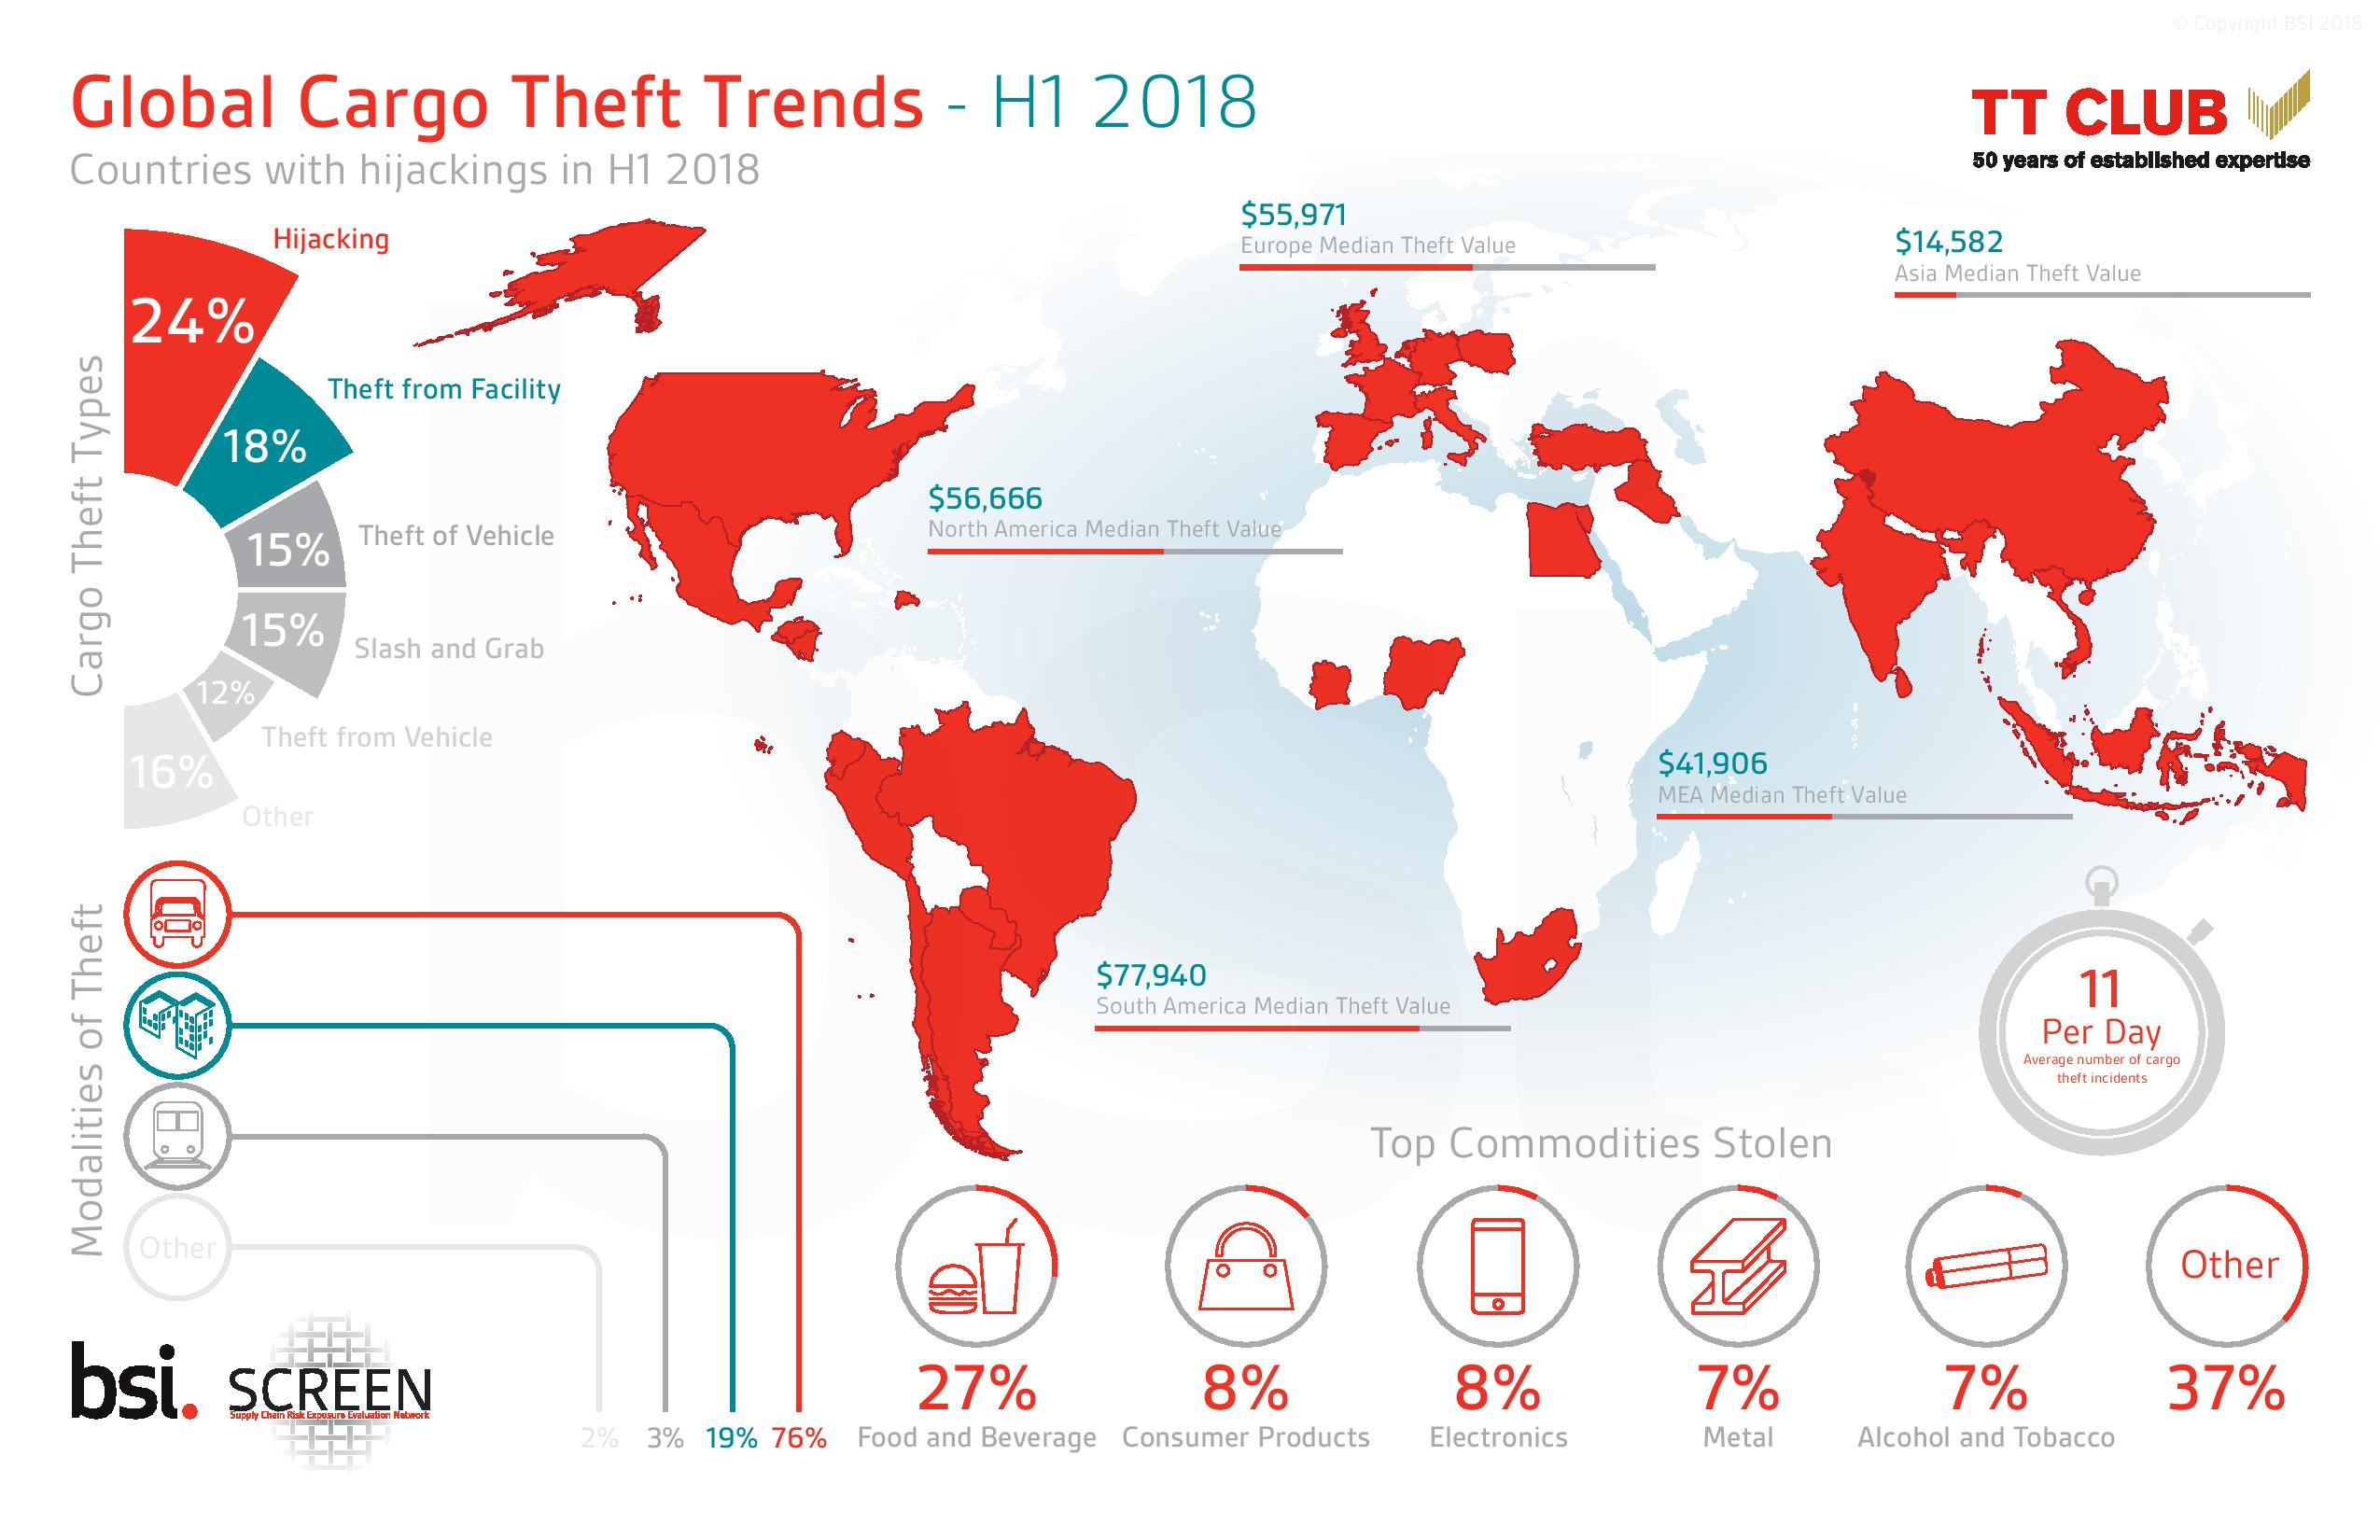 Road transport is the most targeted mode of crime, accounting for over 75% of cargo theft worldwide